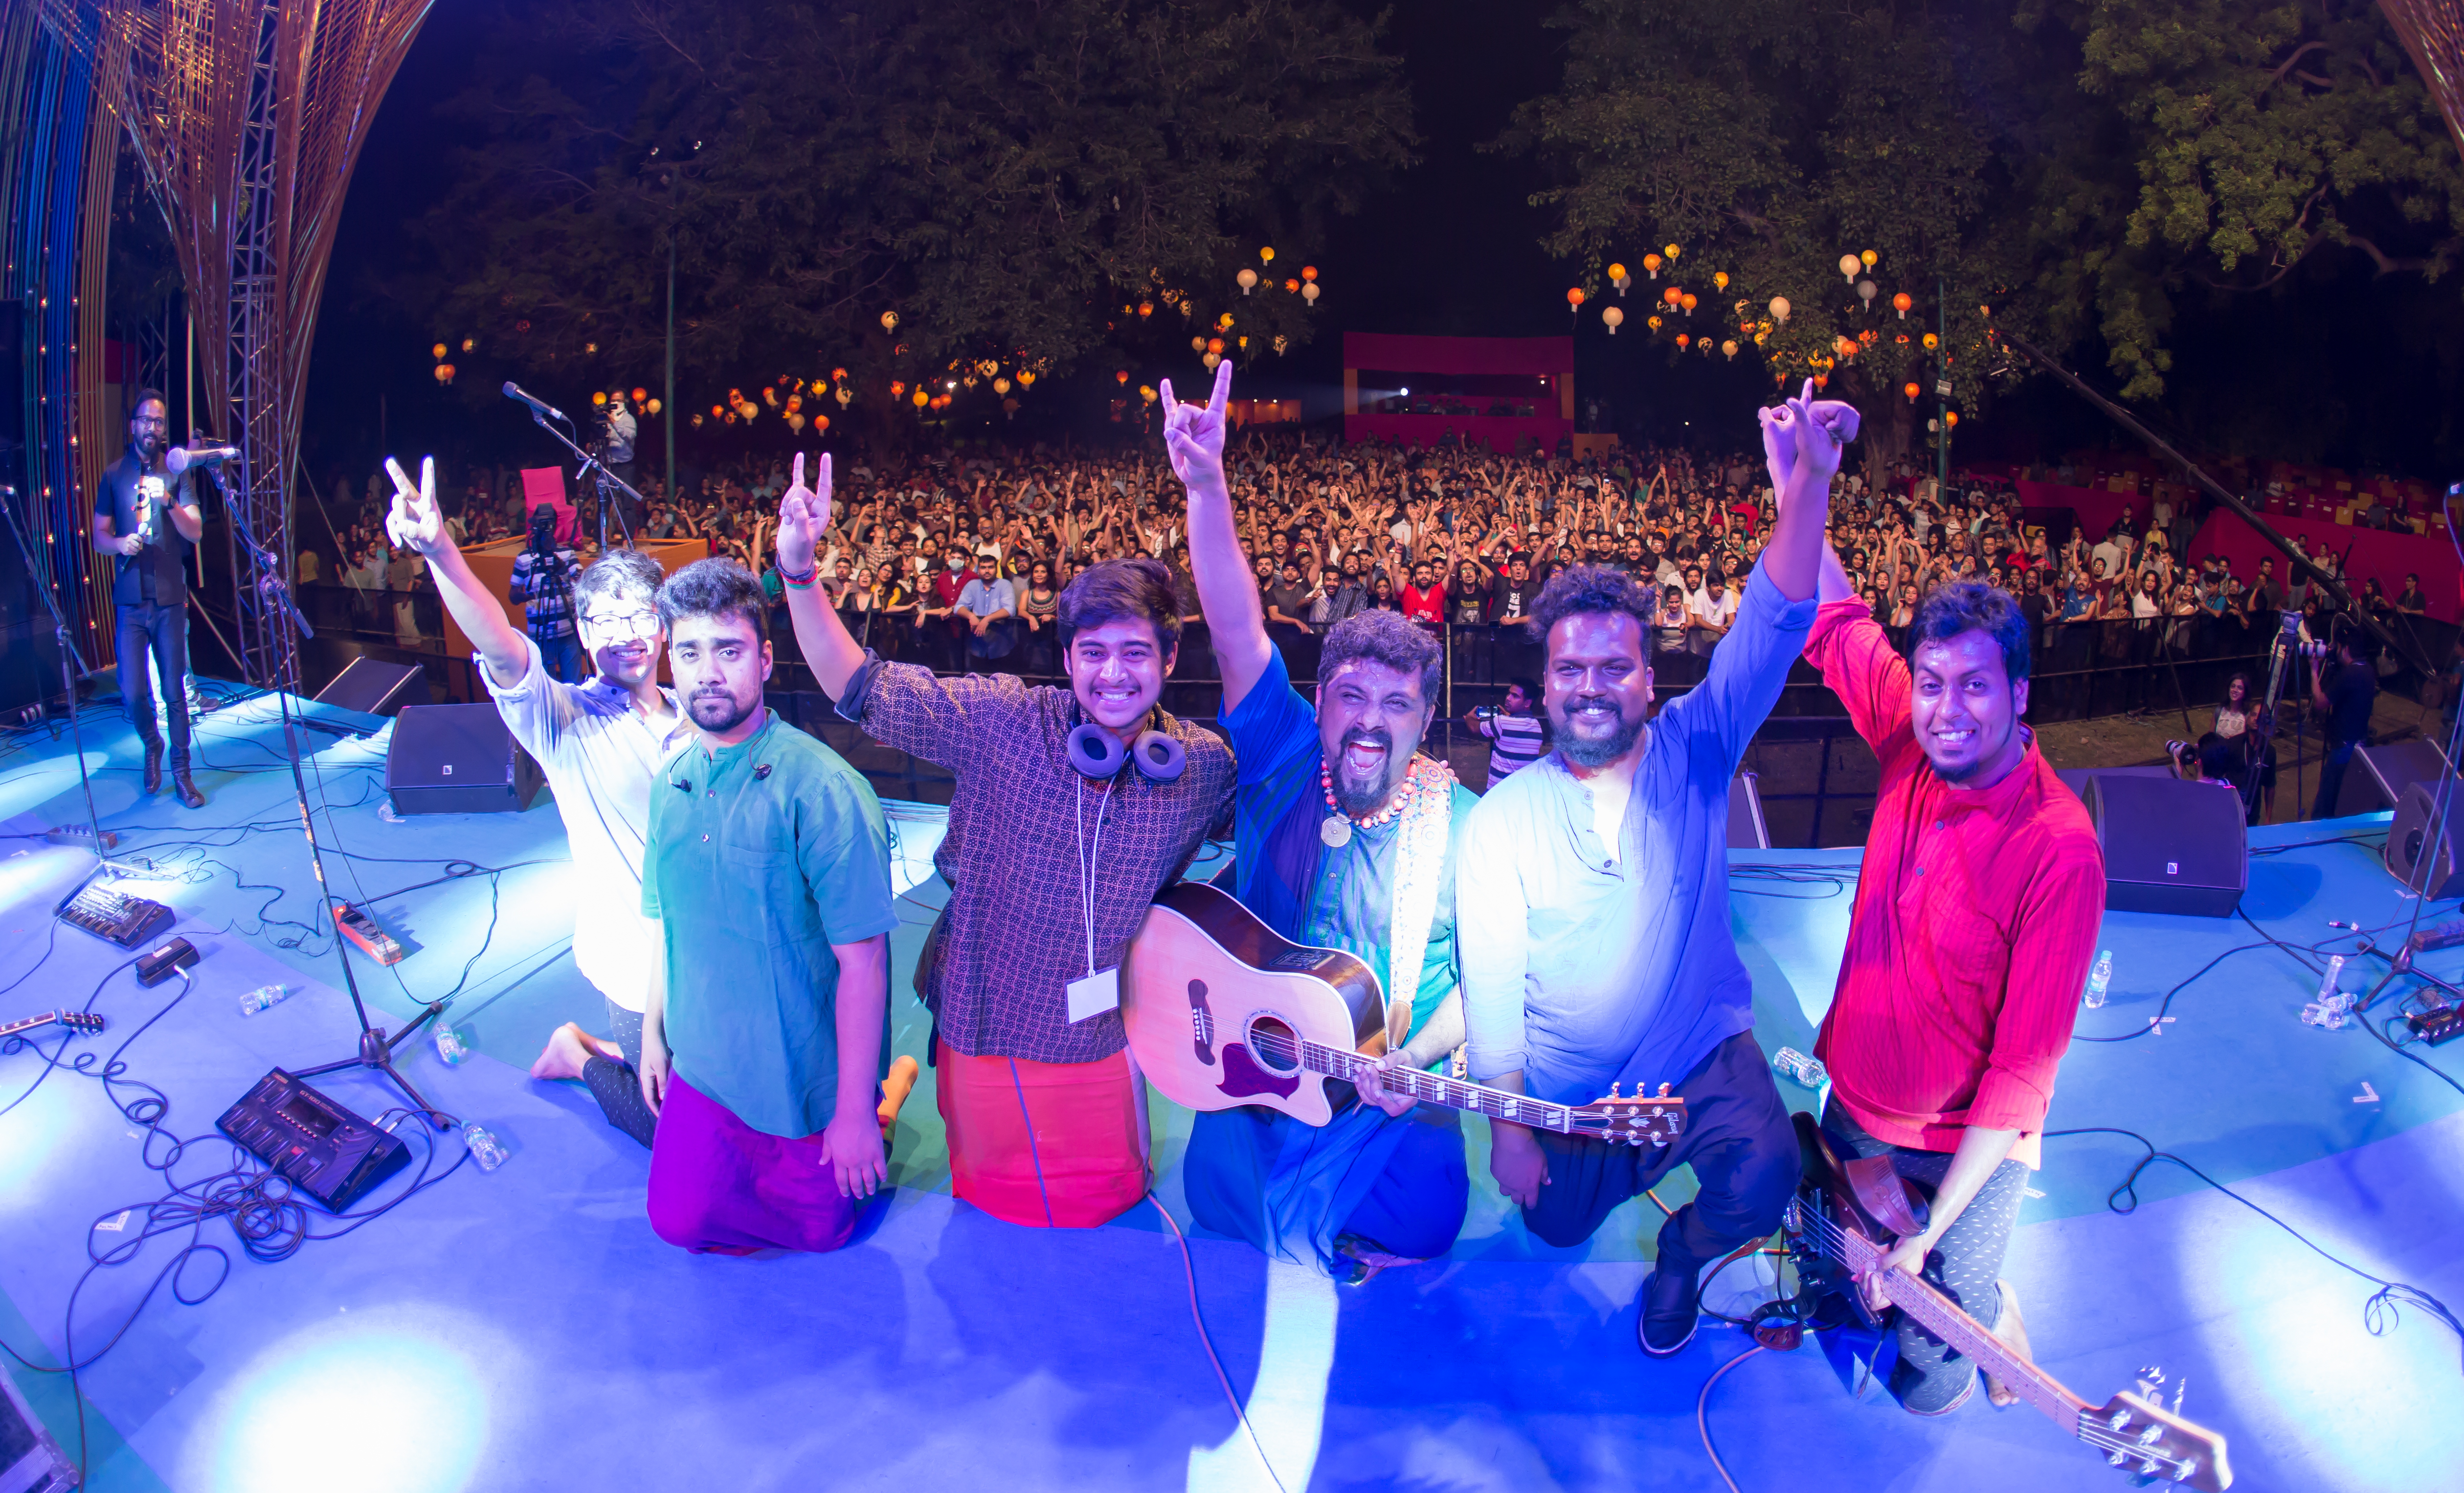 Dixit, and The Raghu Dixit Project, are best known for taking ancient Kannada poetry and presenting it around the world with a contemporary, global sound.